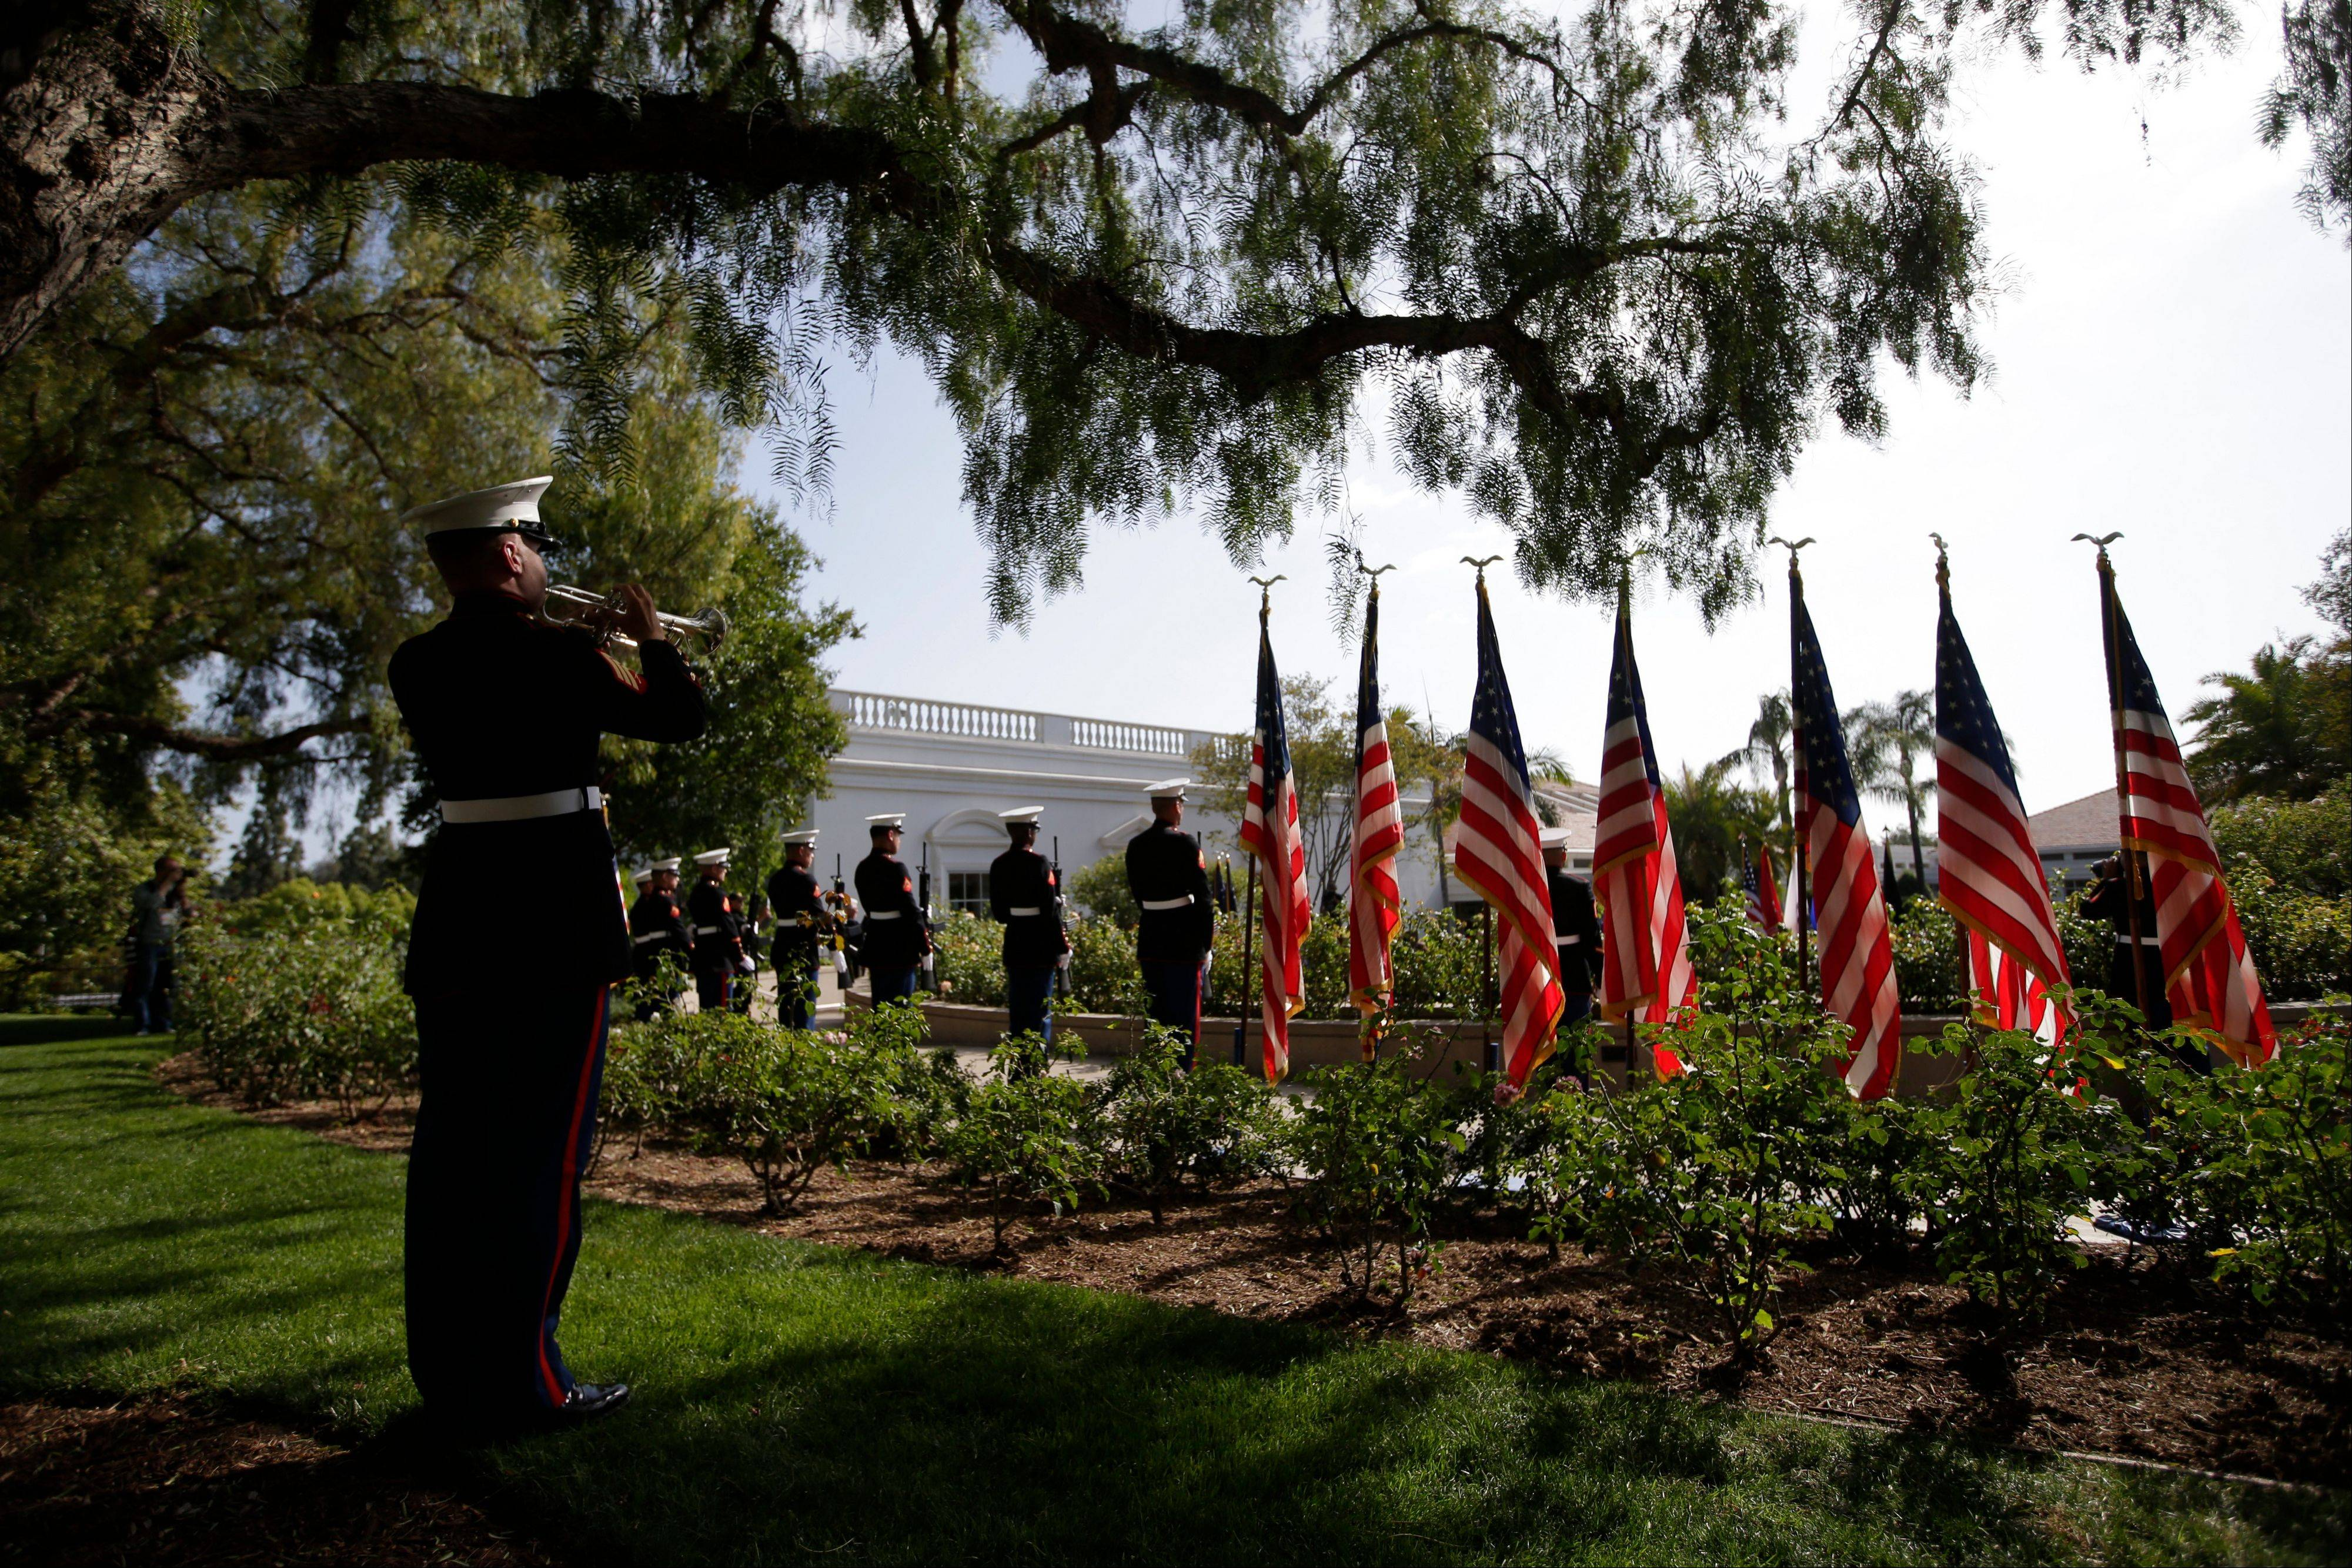 Marine Sgt. John Finch, left, plays the trumpet during the 40th reunion for Vietnam POWs at the Richard Nixon Presidential Library & Museum in Yorba Linda, Calif.